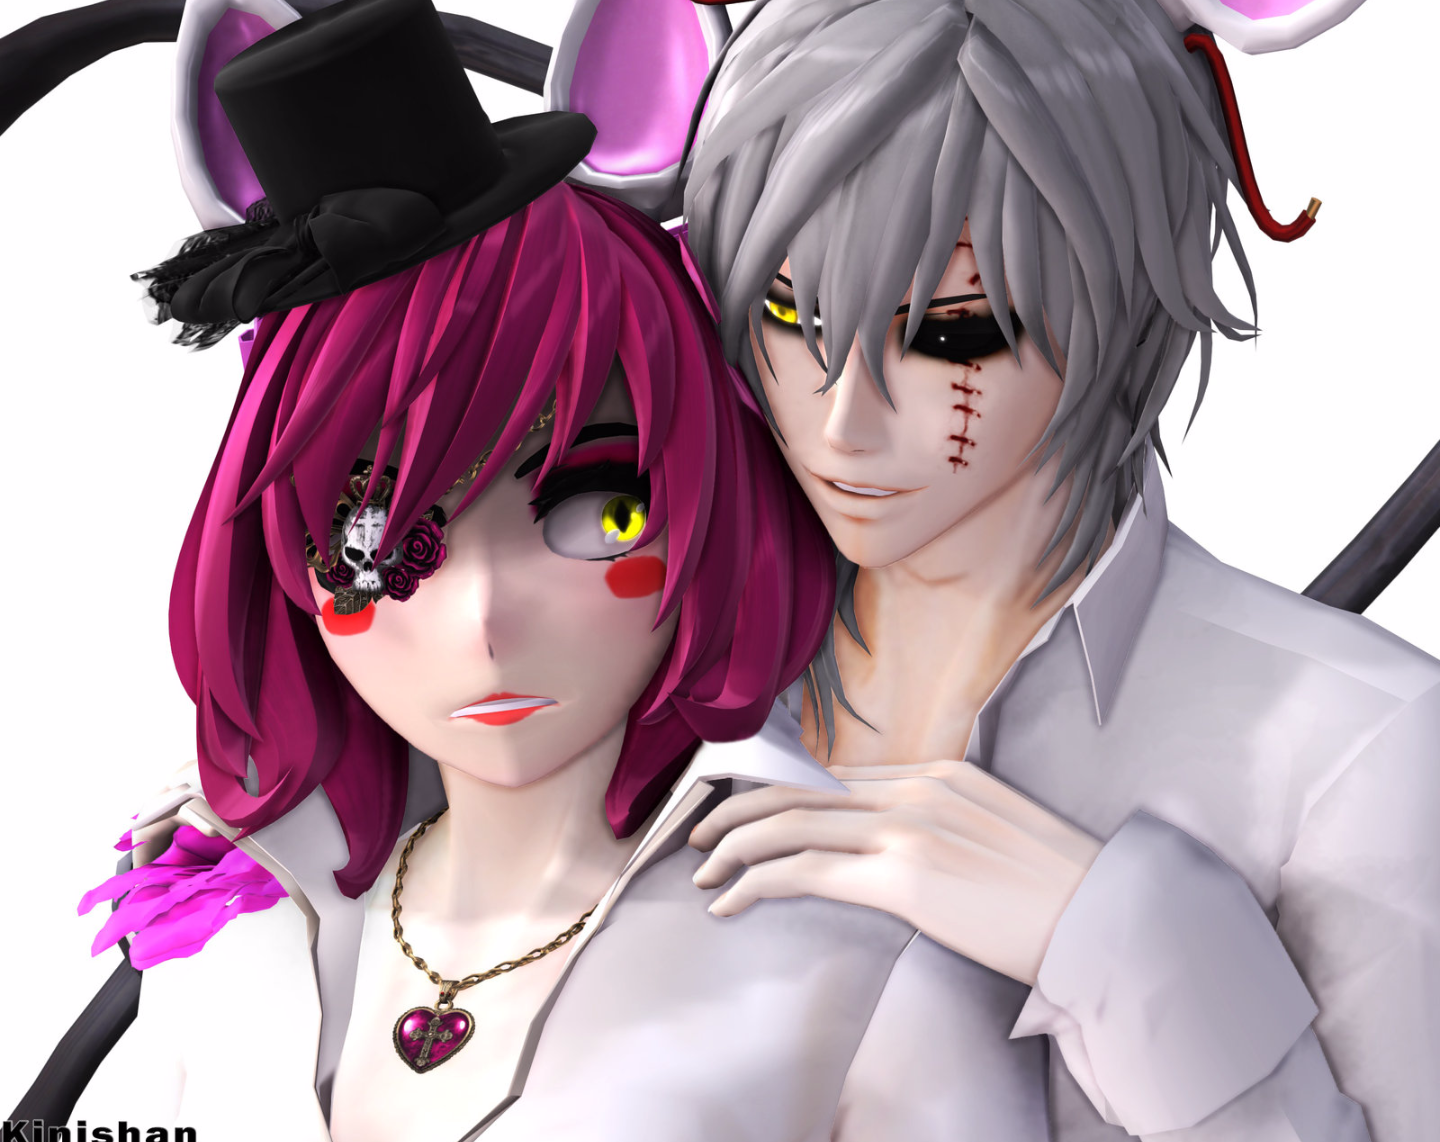 Toy chica x fem mangle preview undertale plans by red - What Do You Think Of The Male And Female Mangle Owo